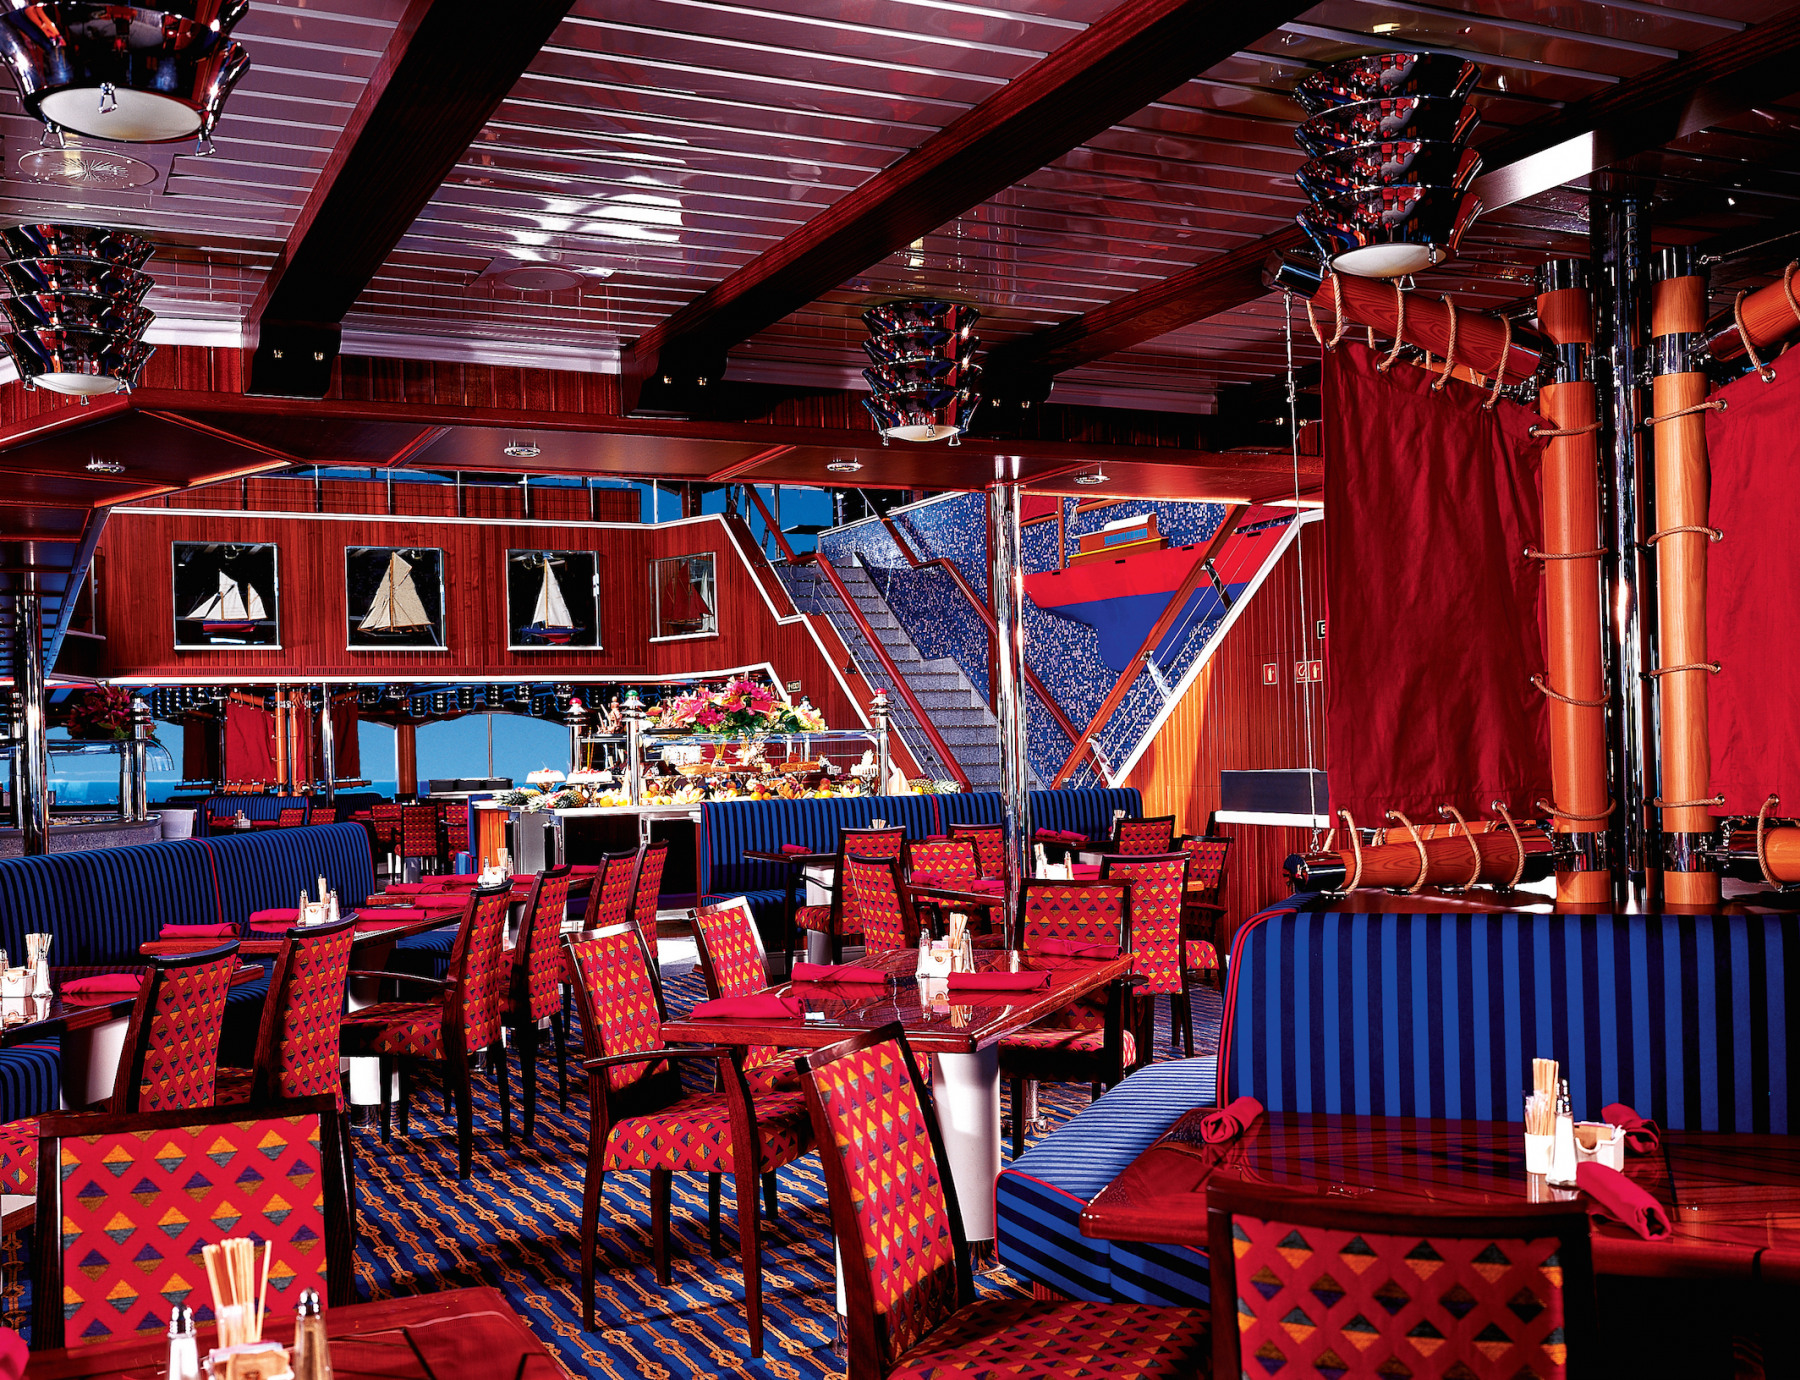 Carnival Glory Red Sail Restaurant 4.jpg